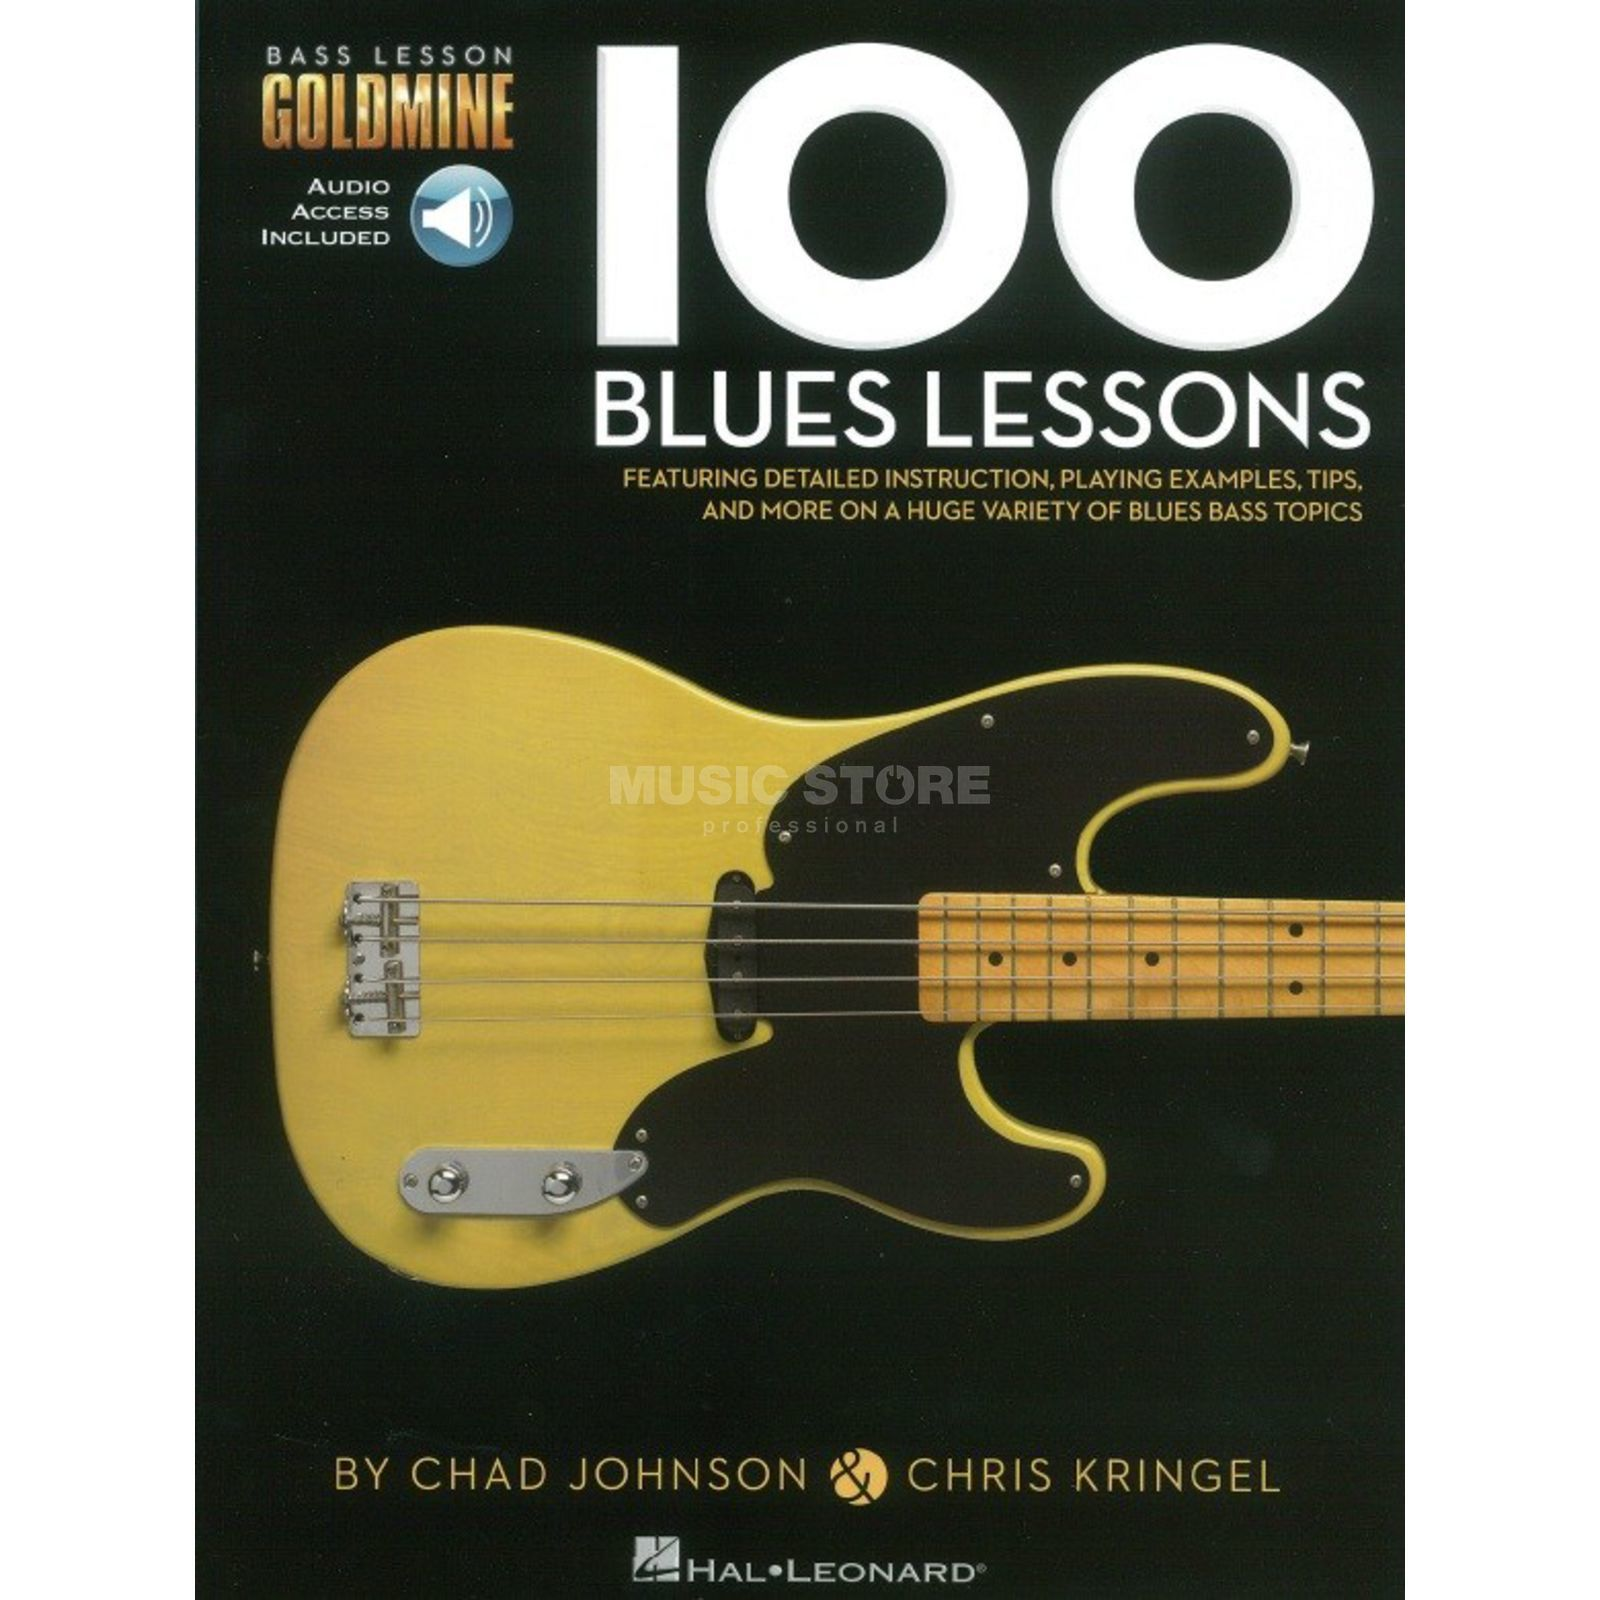 Hal Leonard Goldmine: 100 Blues Lessons Bass Produktbild